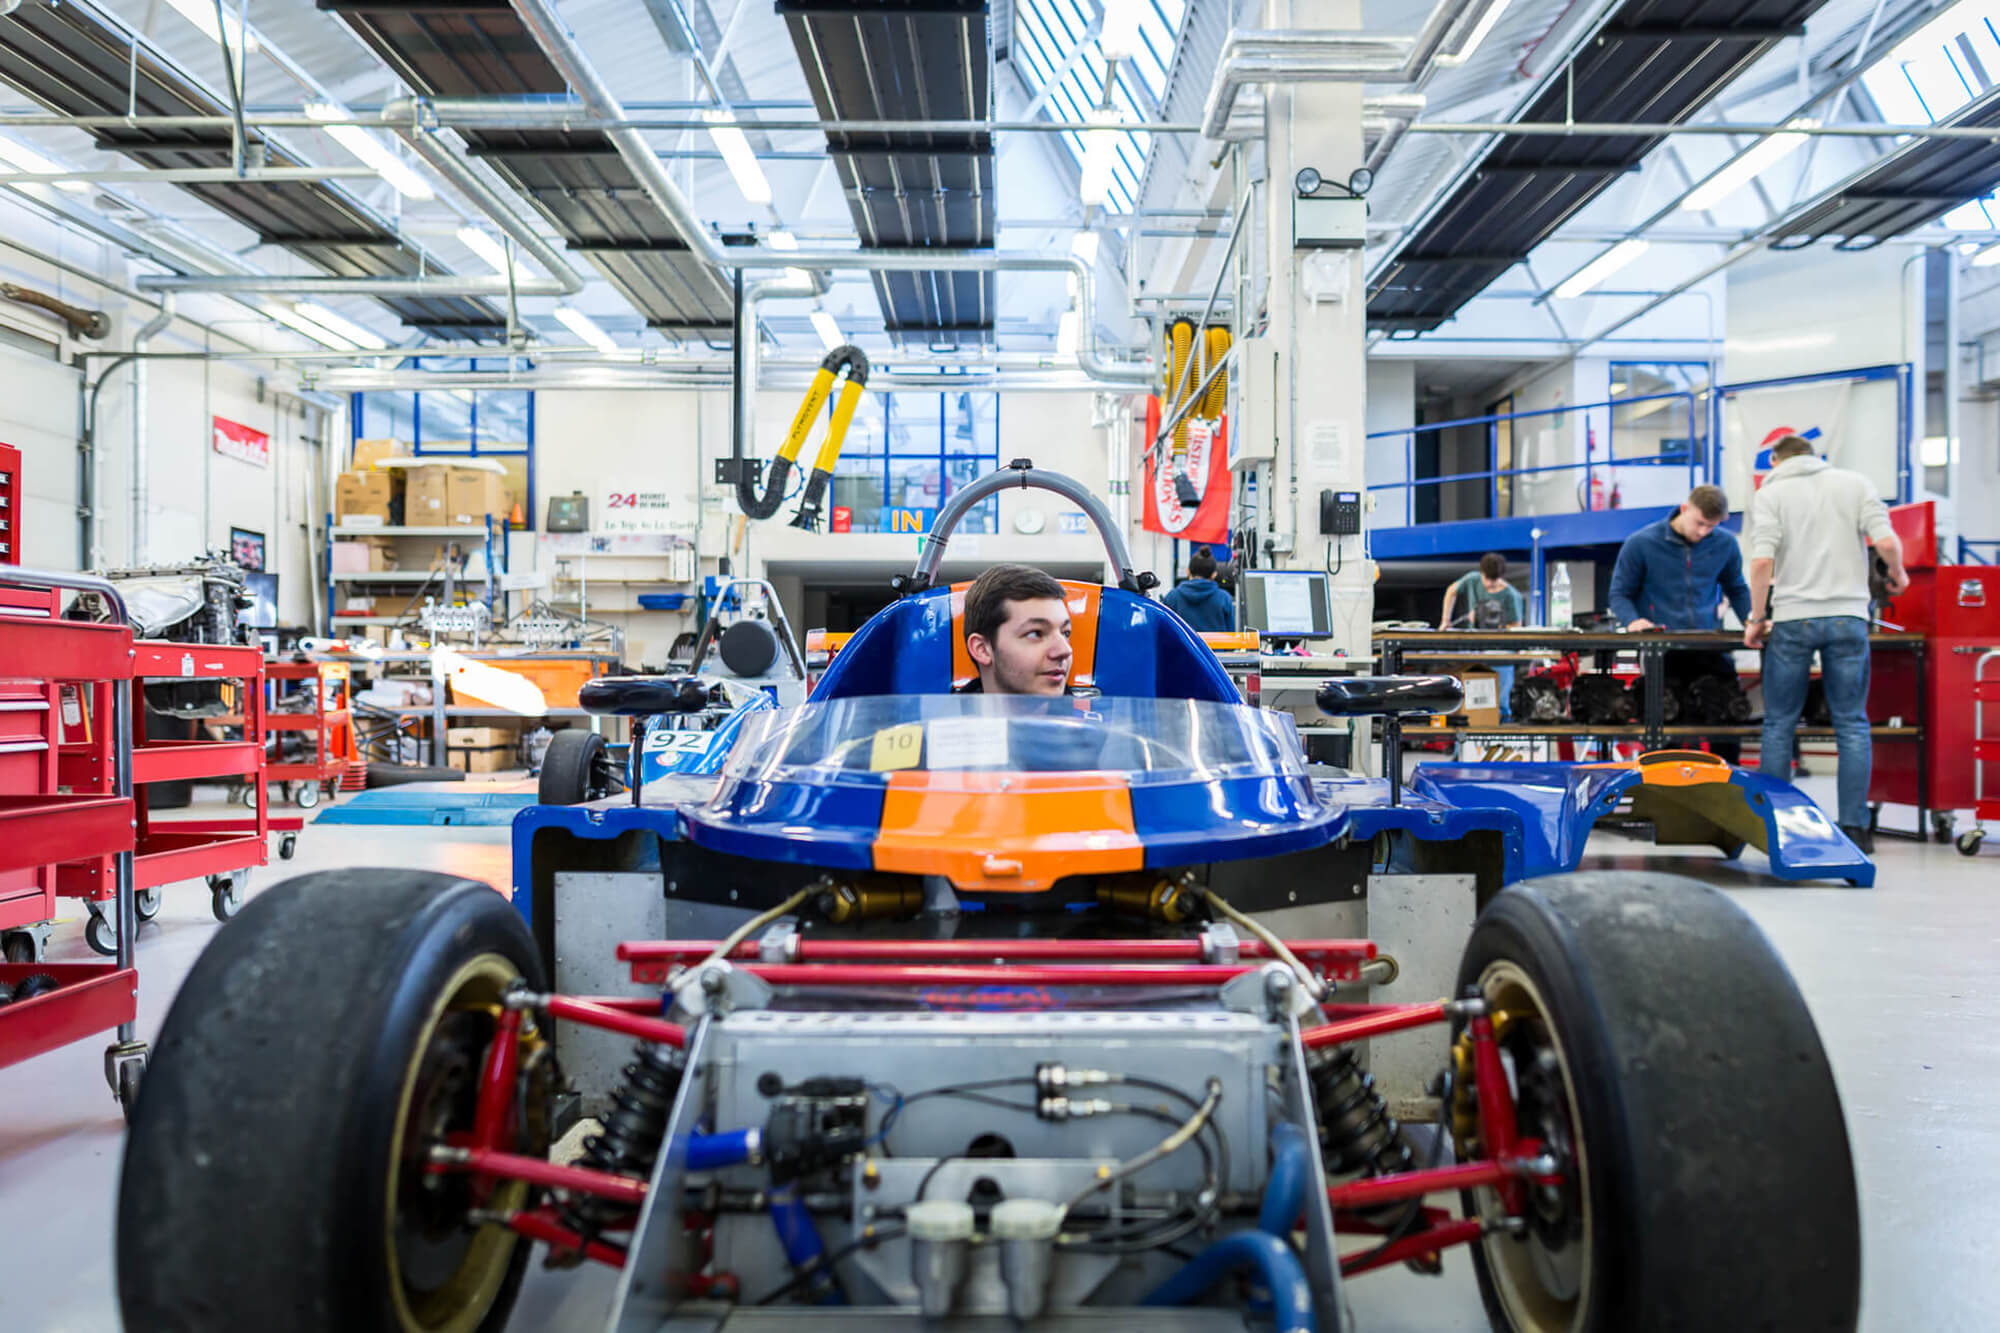 motorsport students in the engineering workshops